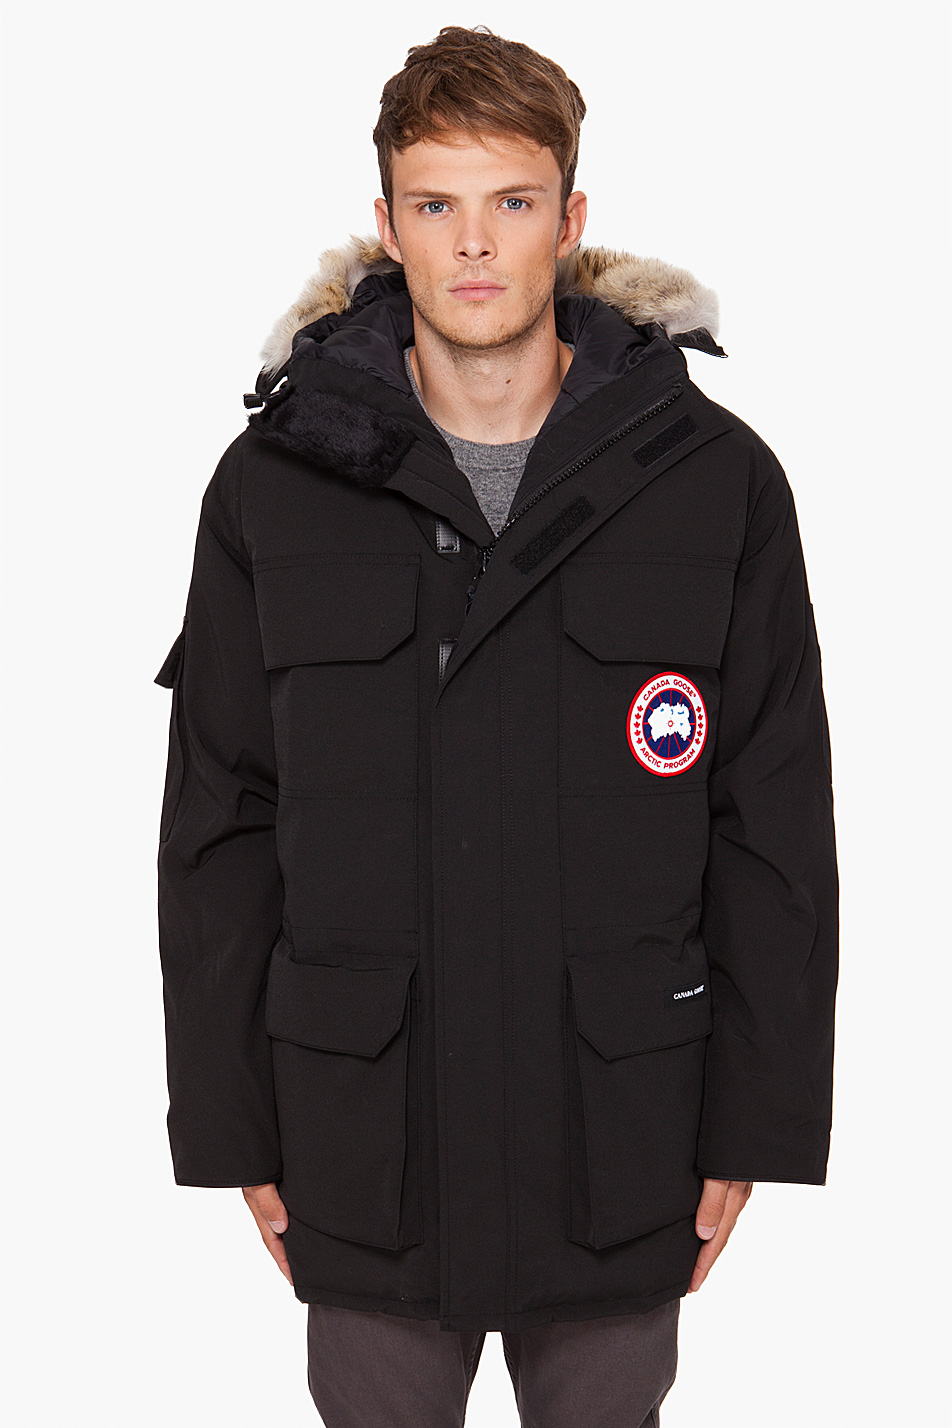 Canada Goose Expedition Parka Jackets